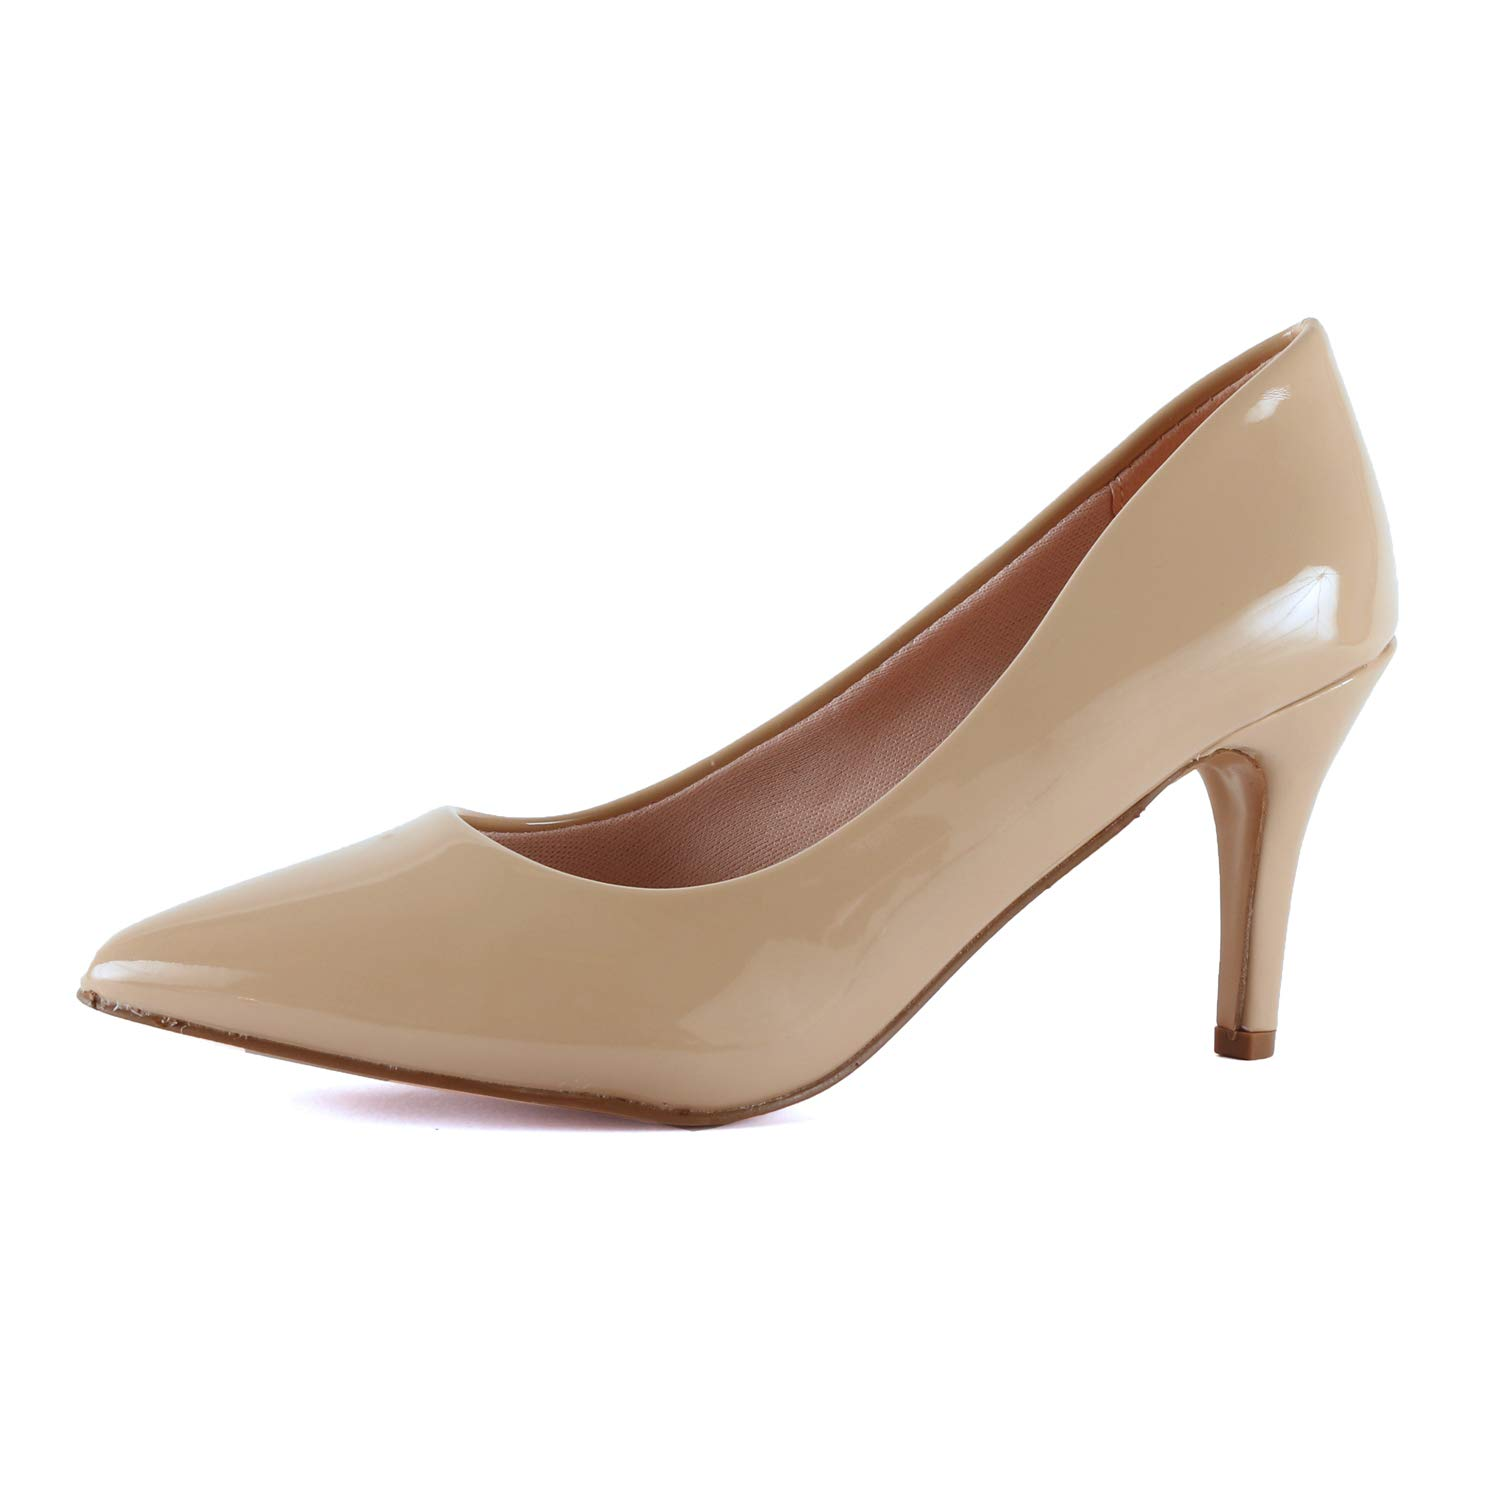 ac9bc29f5c1 Guilty Shoes Womens Classic - Closed Pointy Toe Low Kitten Heel - Dress  Slip On Pump